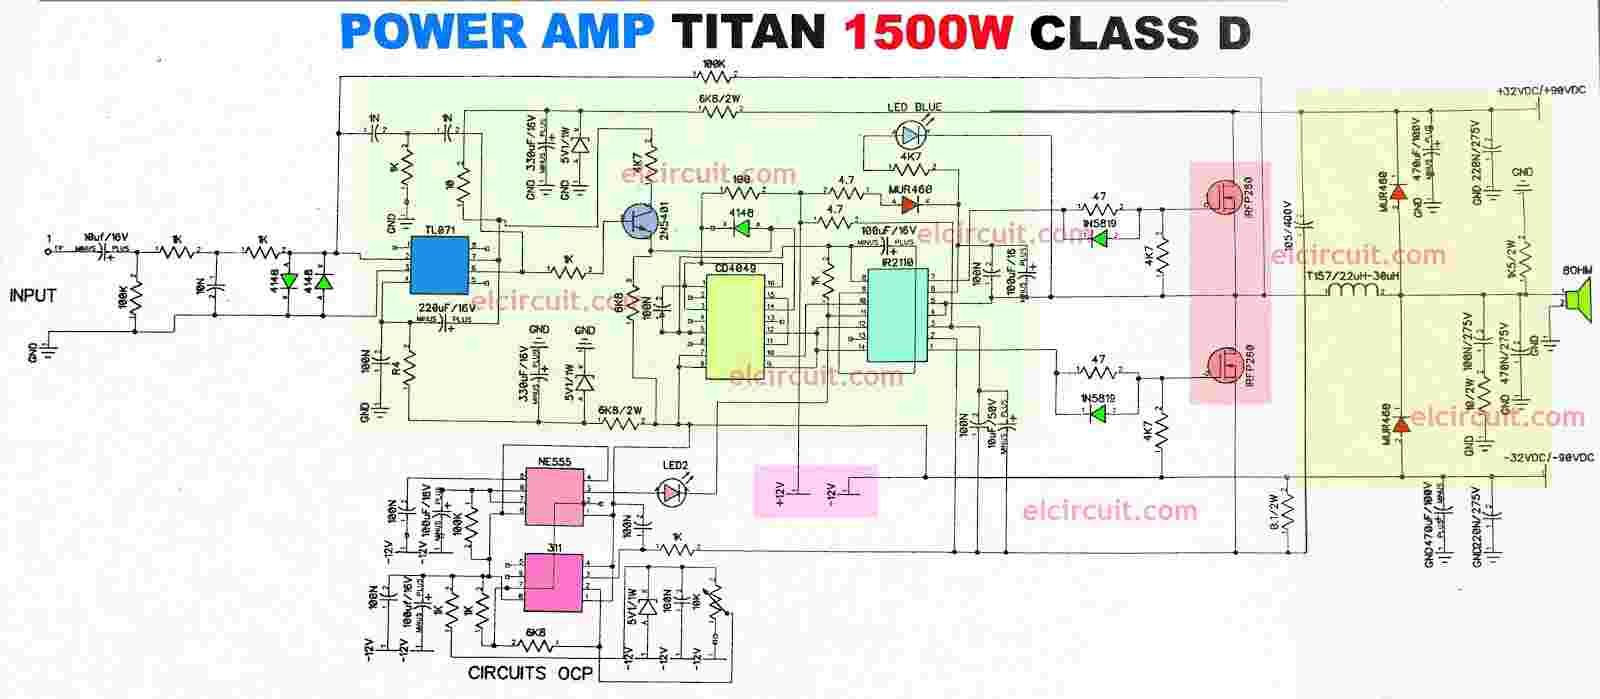 Power Amplifier 1500w Class D Ir2110 Cd4049 Skema Amply Audio Block Diagram High Circuit Electronic The